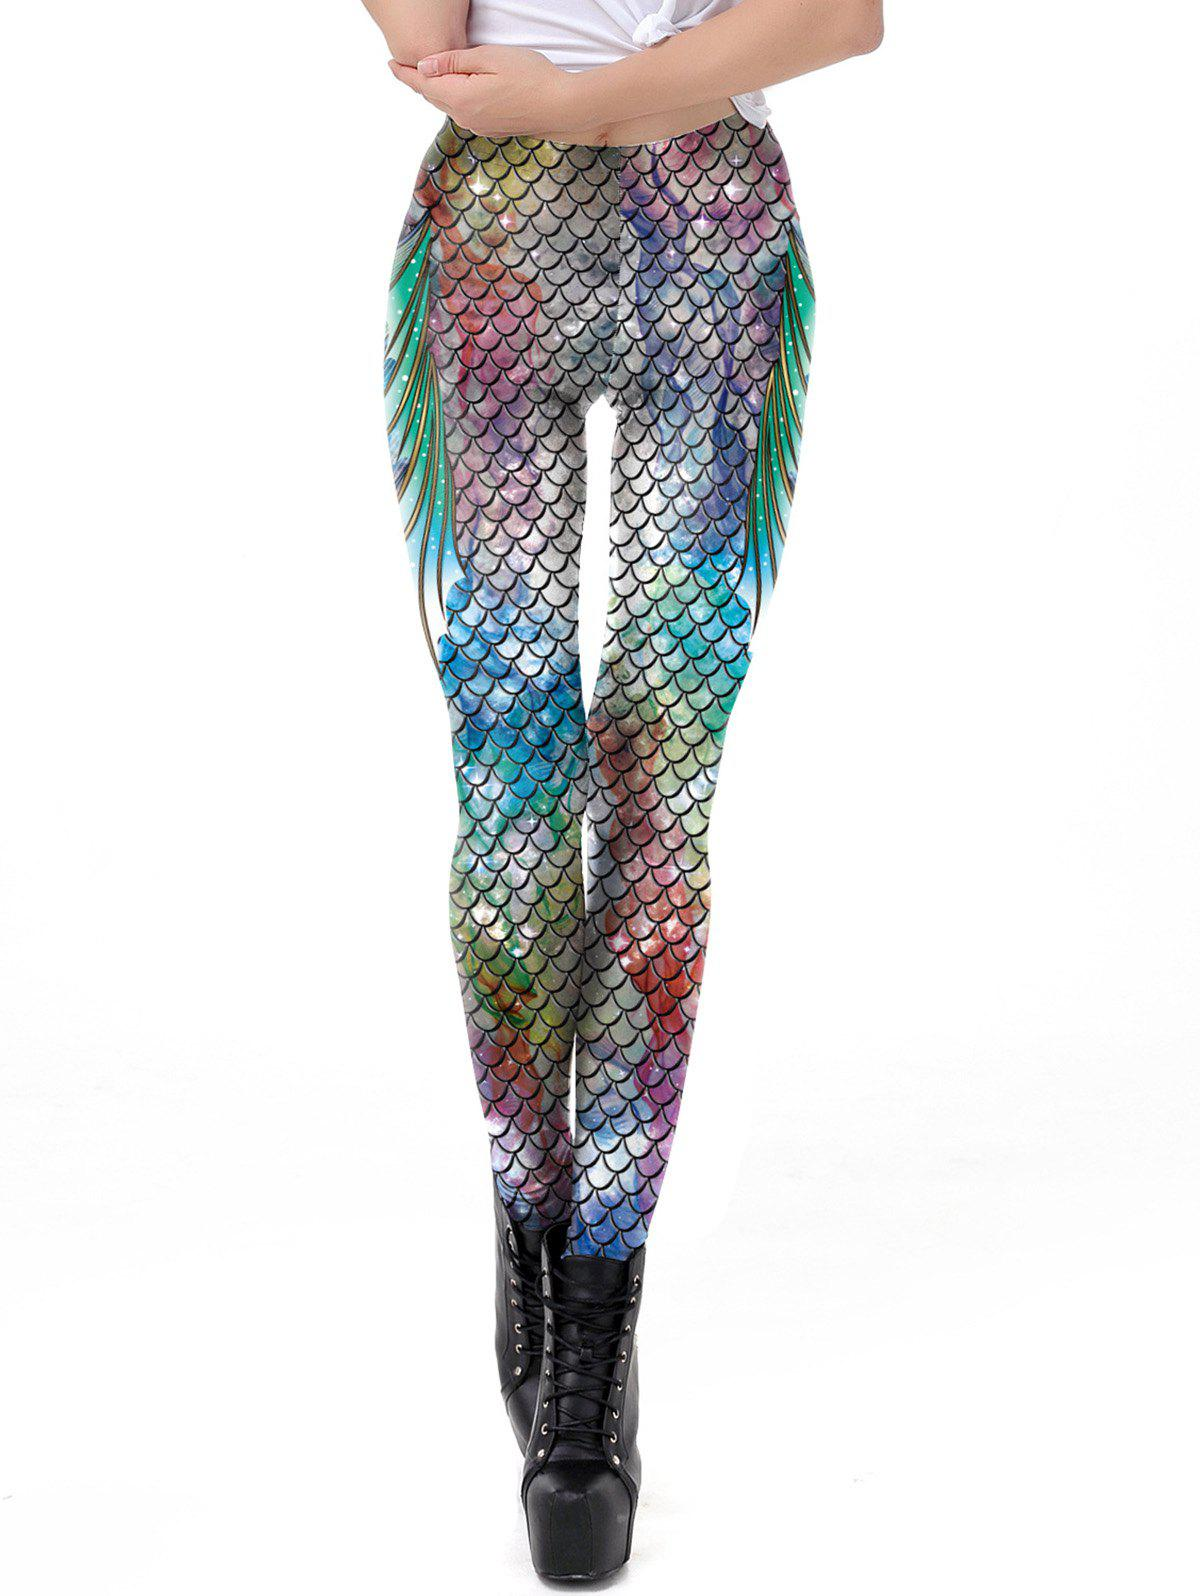 New Women New Mermaid Fish Scale Printed Leggings Stretch Tight Pants